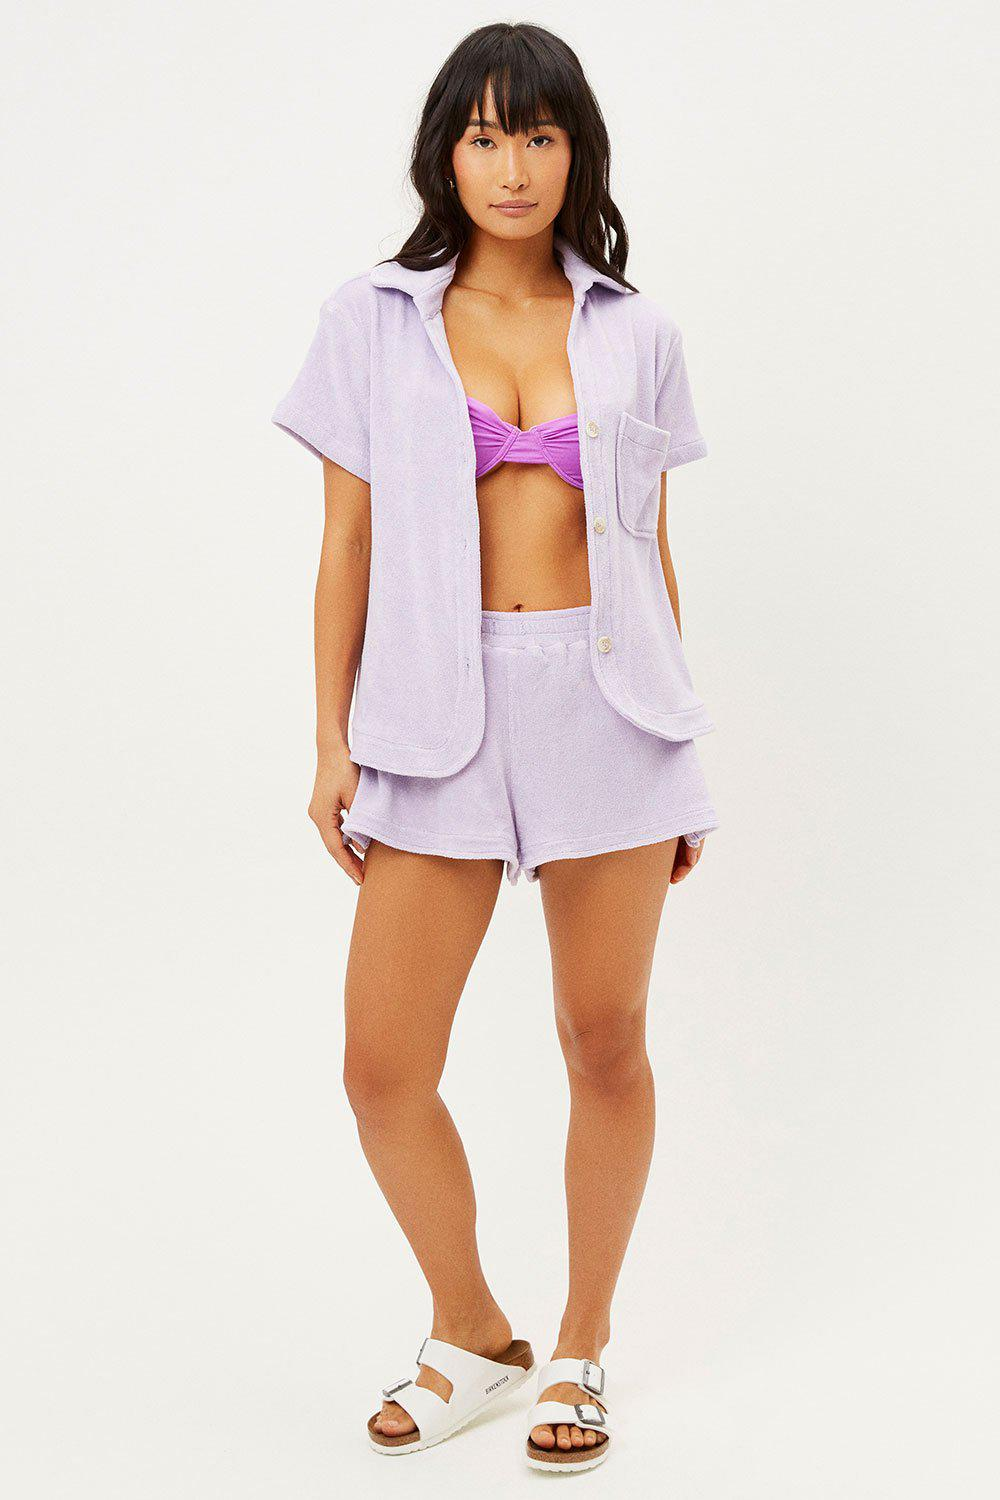 Coco Terry Button Up Shirt - Lilac 2